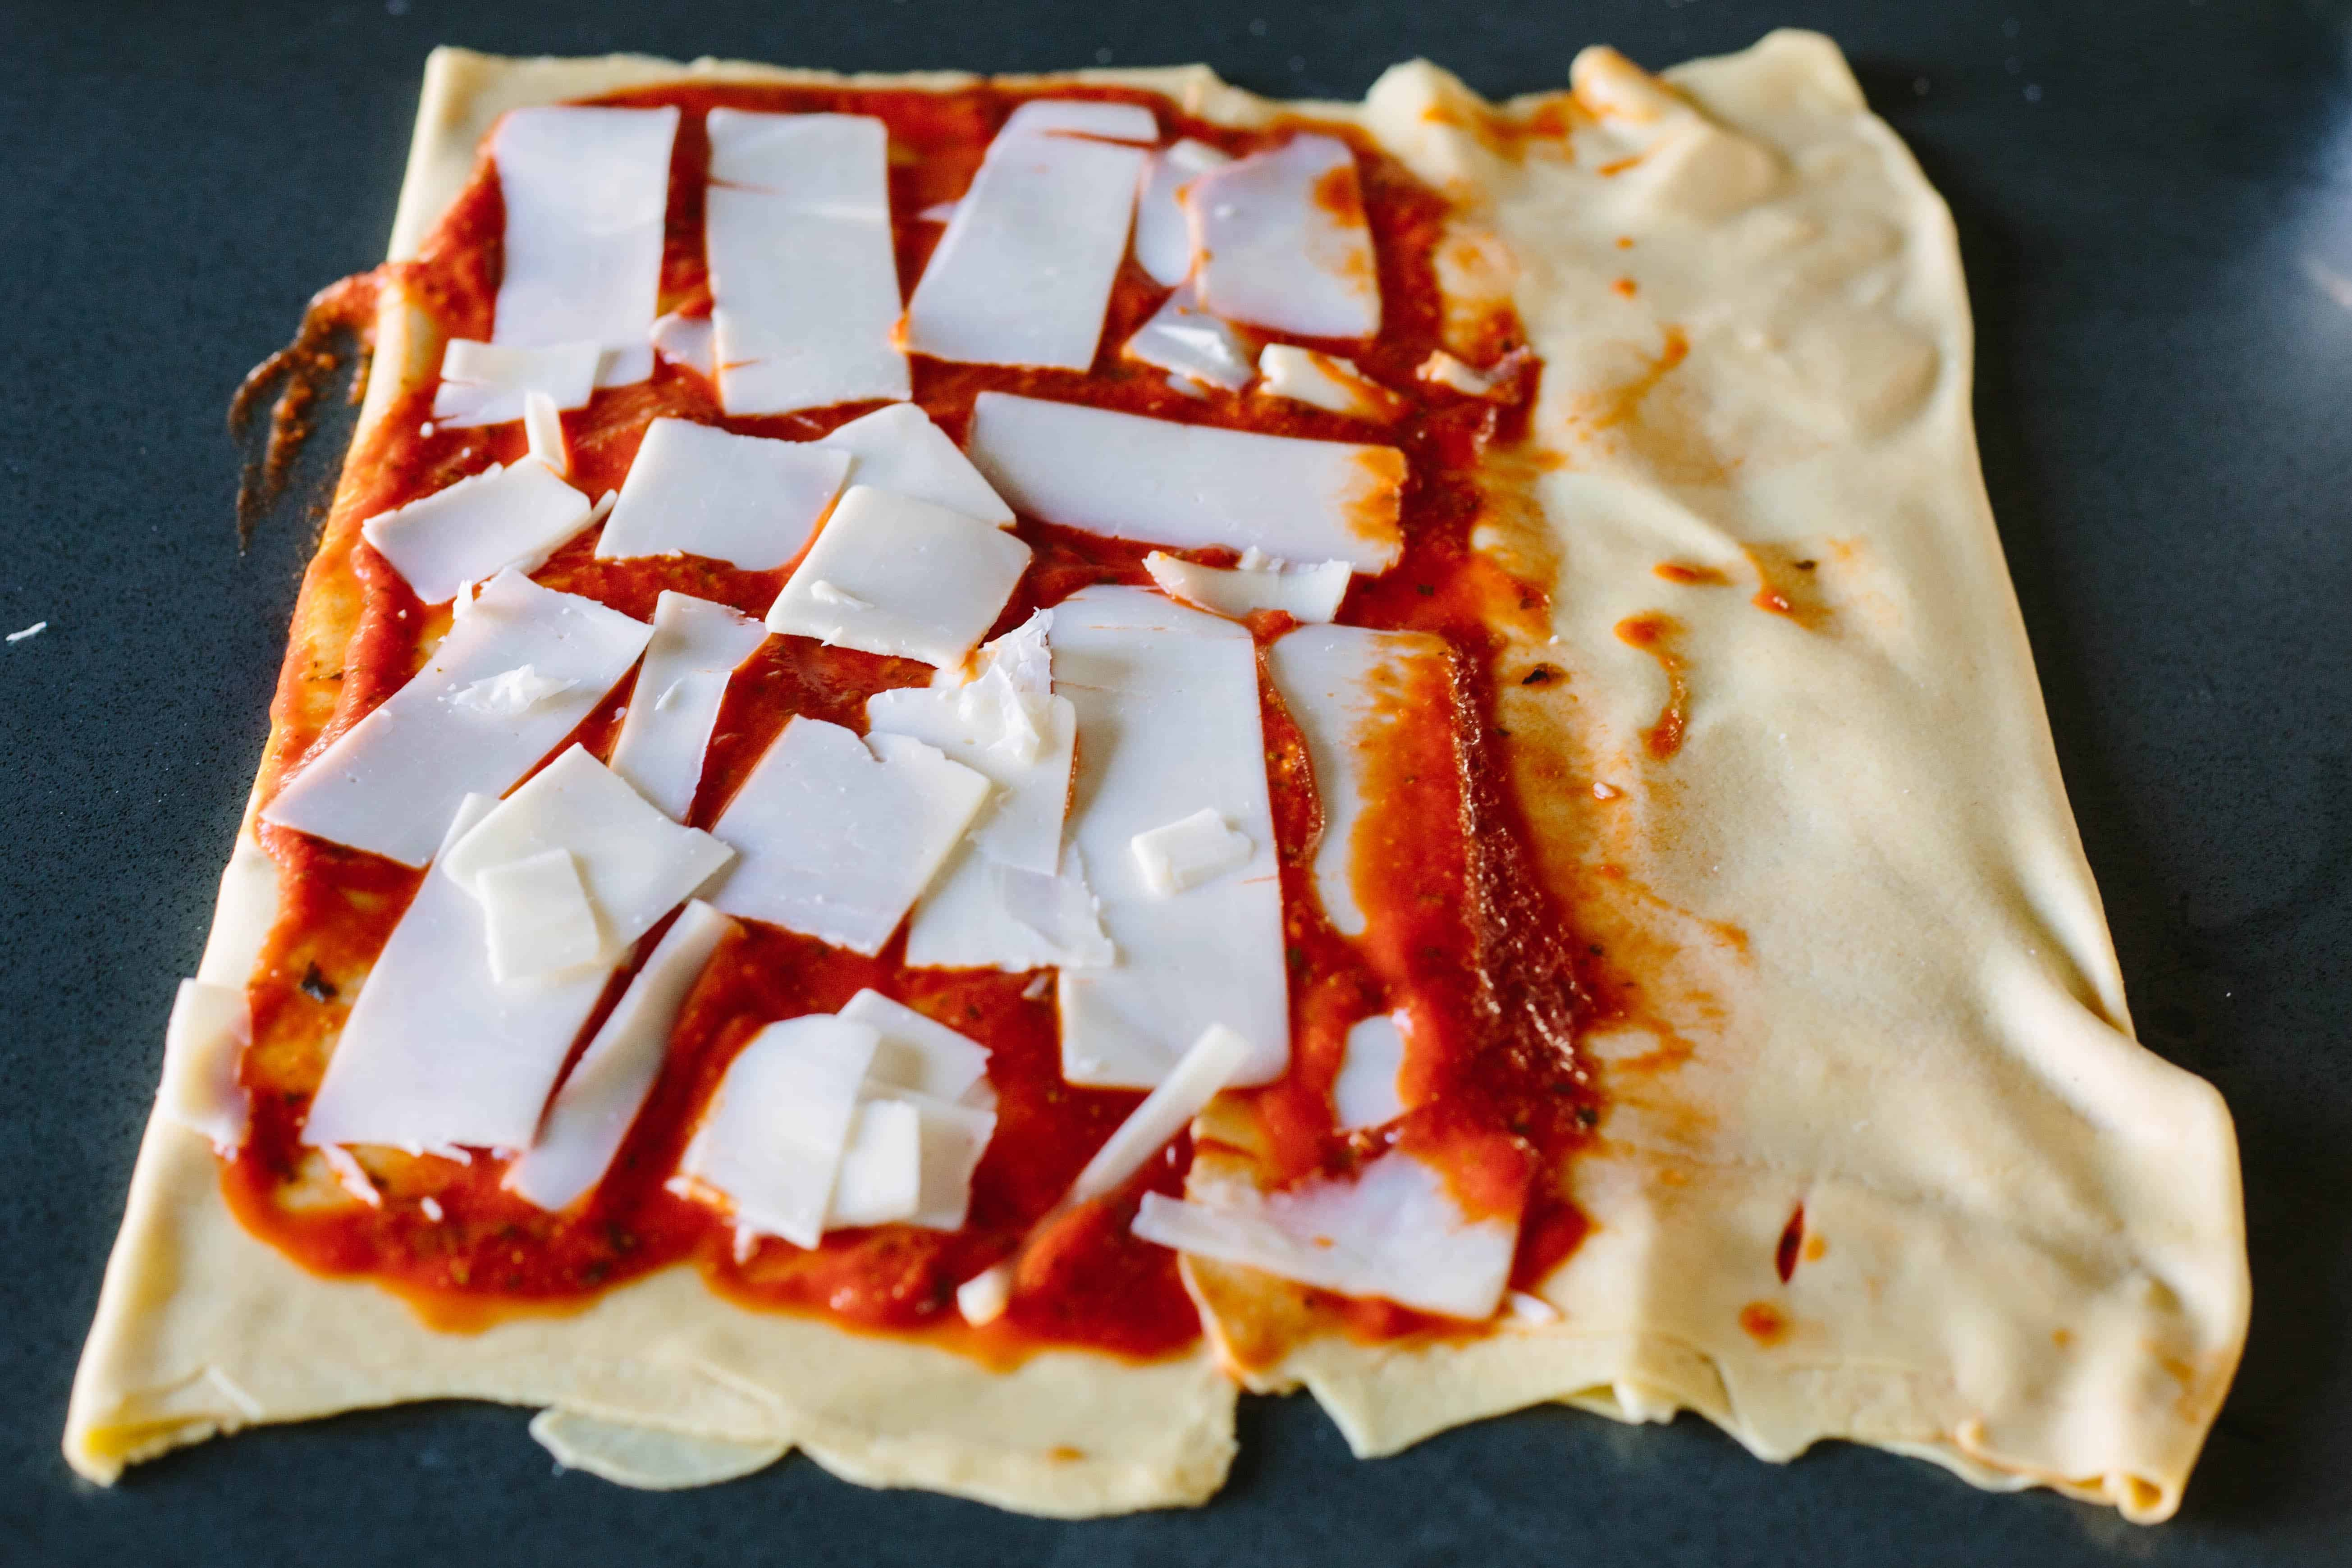 Folding bread dough over layers of cheese and pizza sauce.